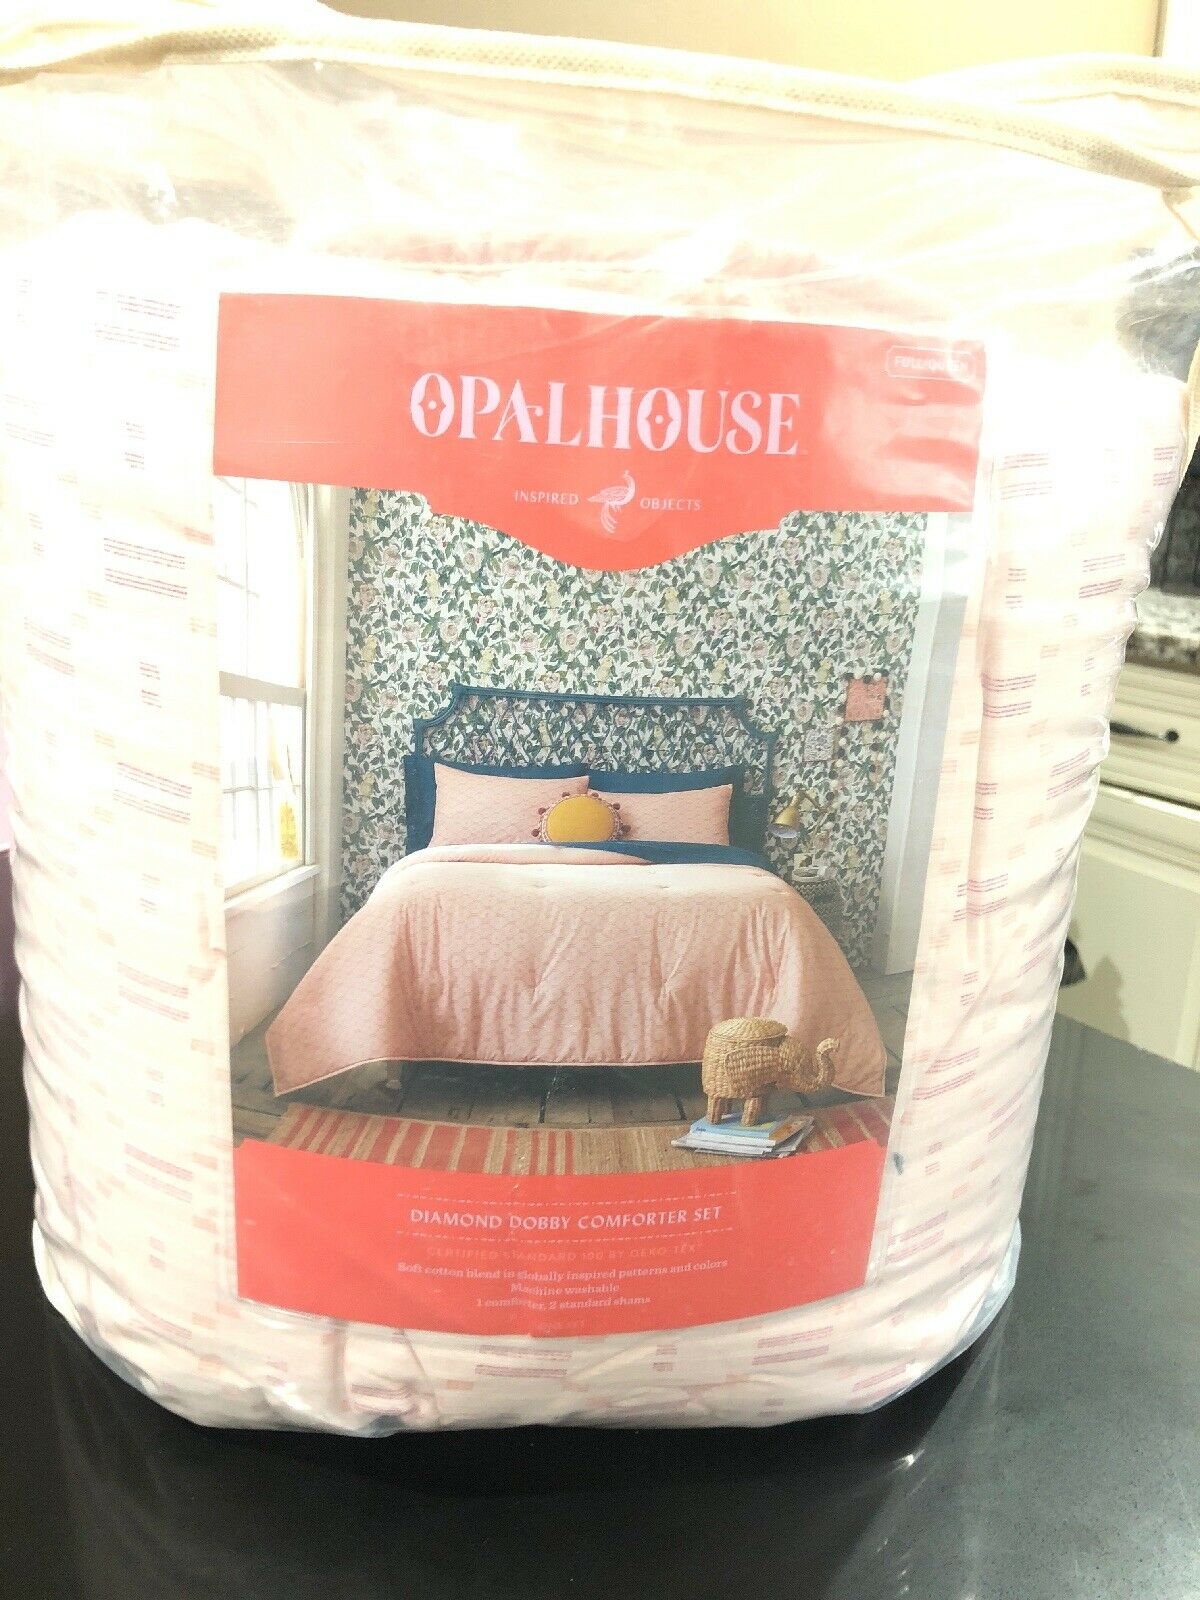 Opalhouse Full Queen Diamond Dobby Comforter Set 1-comforter 2-shams.